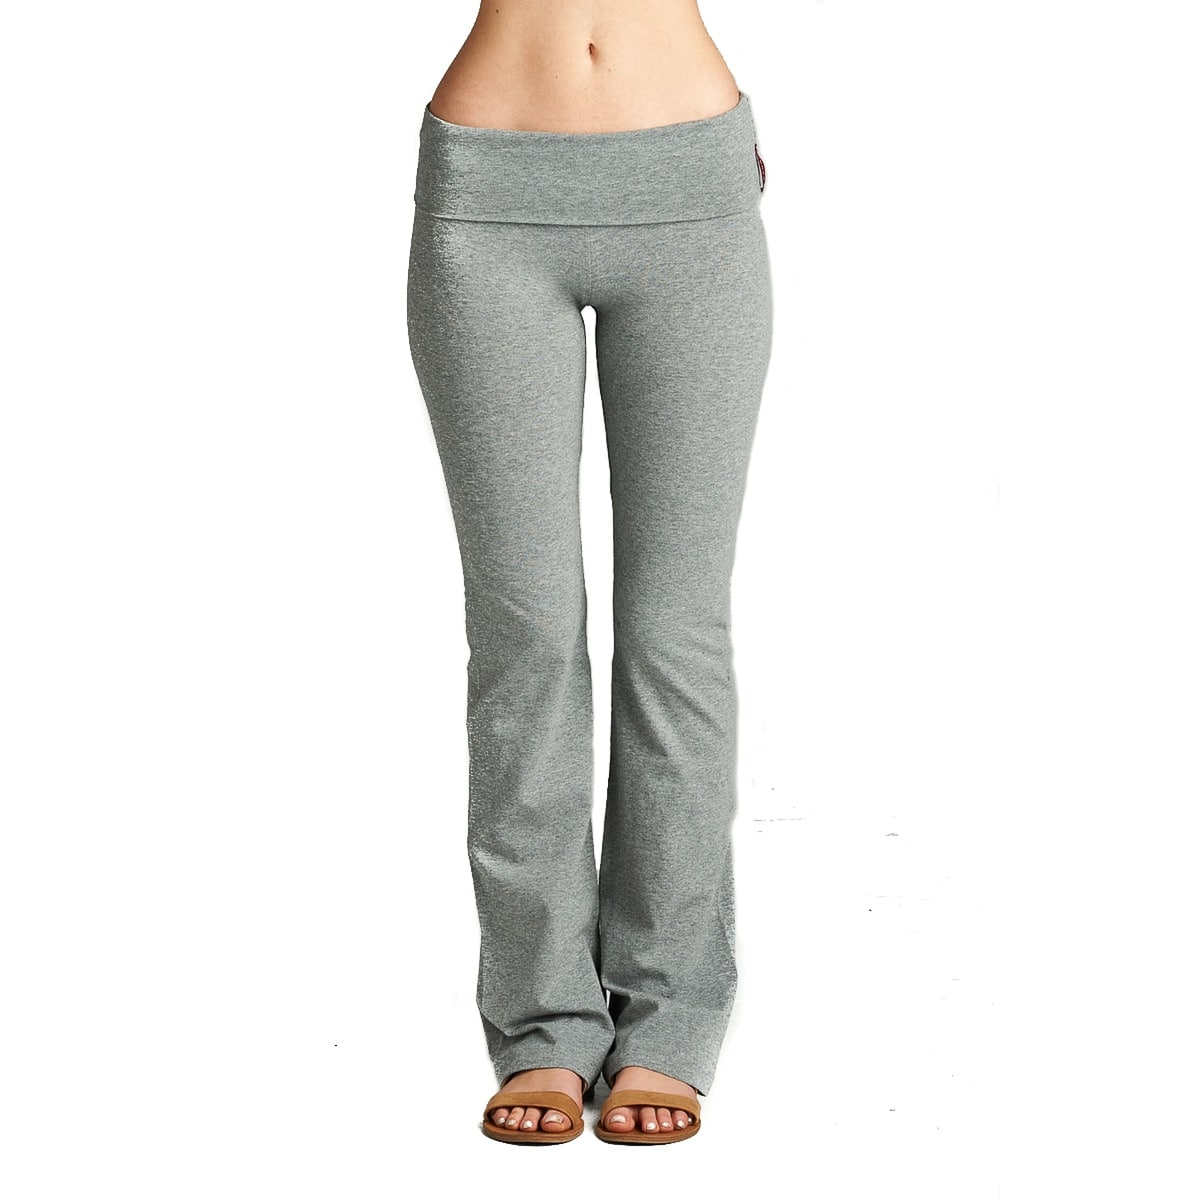 b35797f698e02 Shop Simply Ravishing Yoga Pants Cotton Fold Over Waist Boot Cut (Size:  S-3X) - Free Shipping On Orders Over $45 - Overstock - 13751682